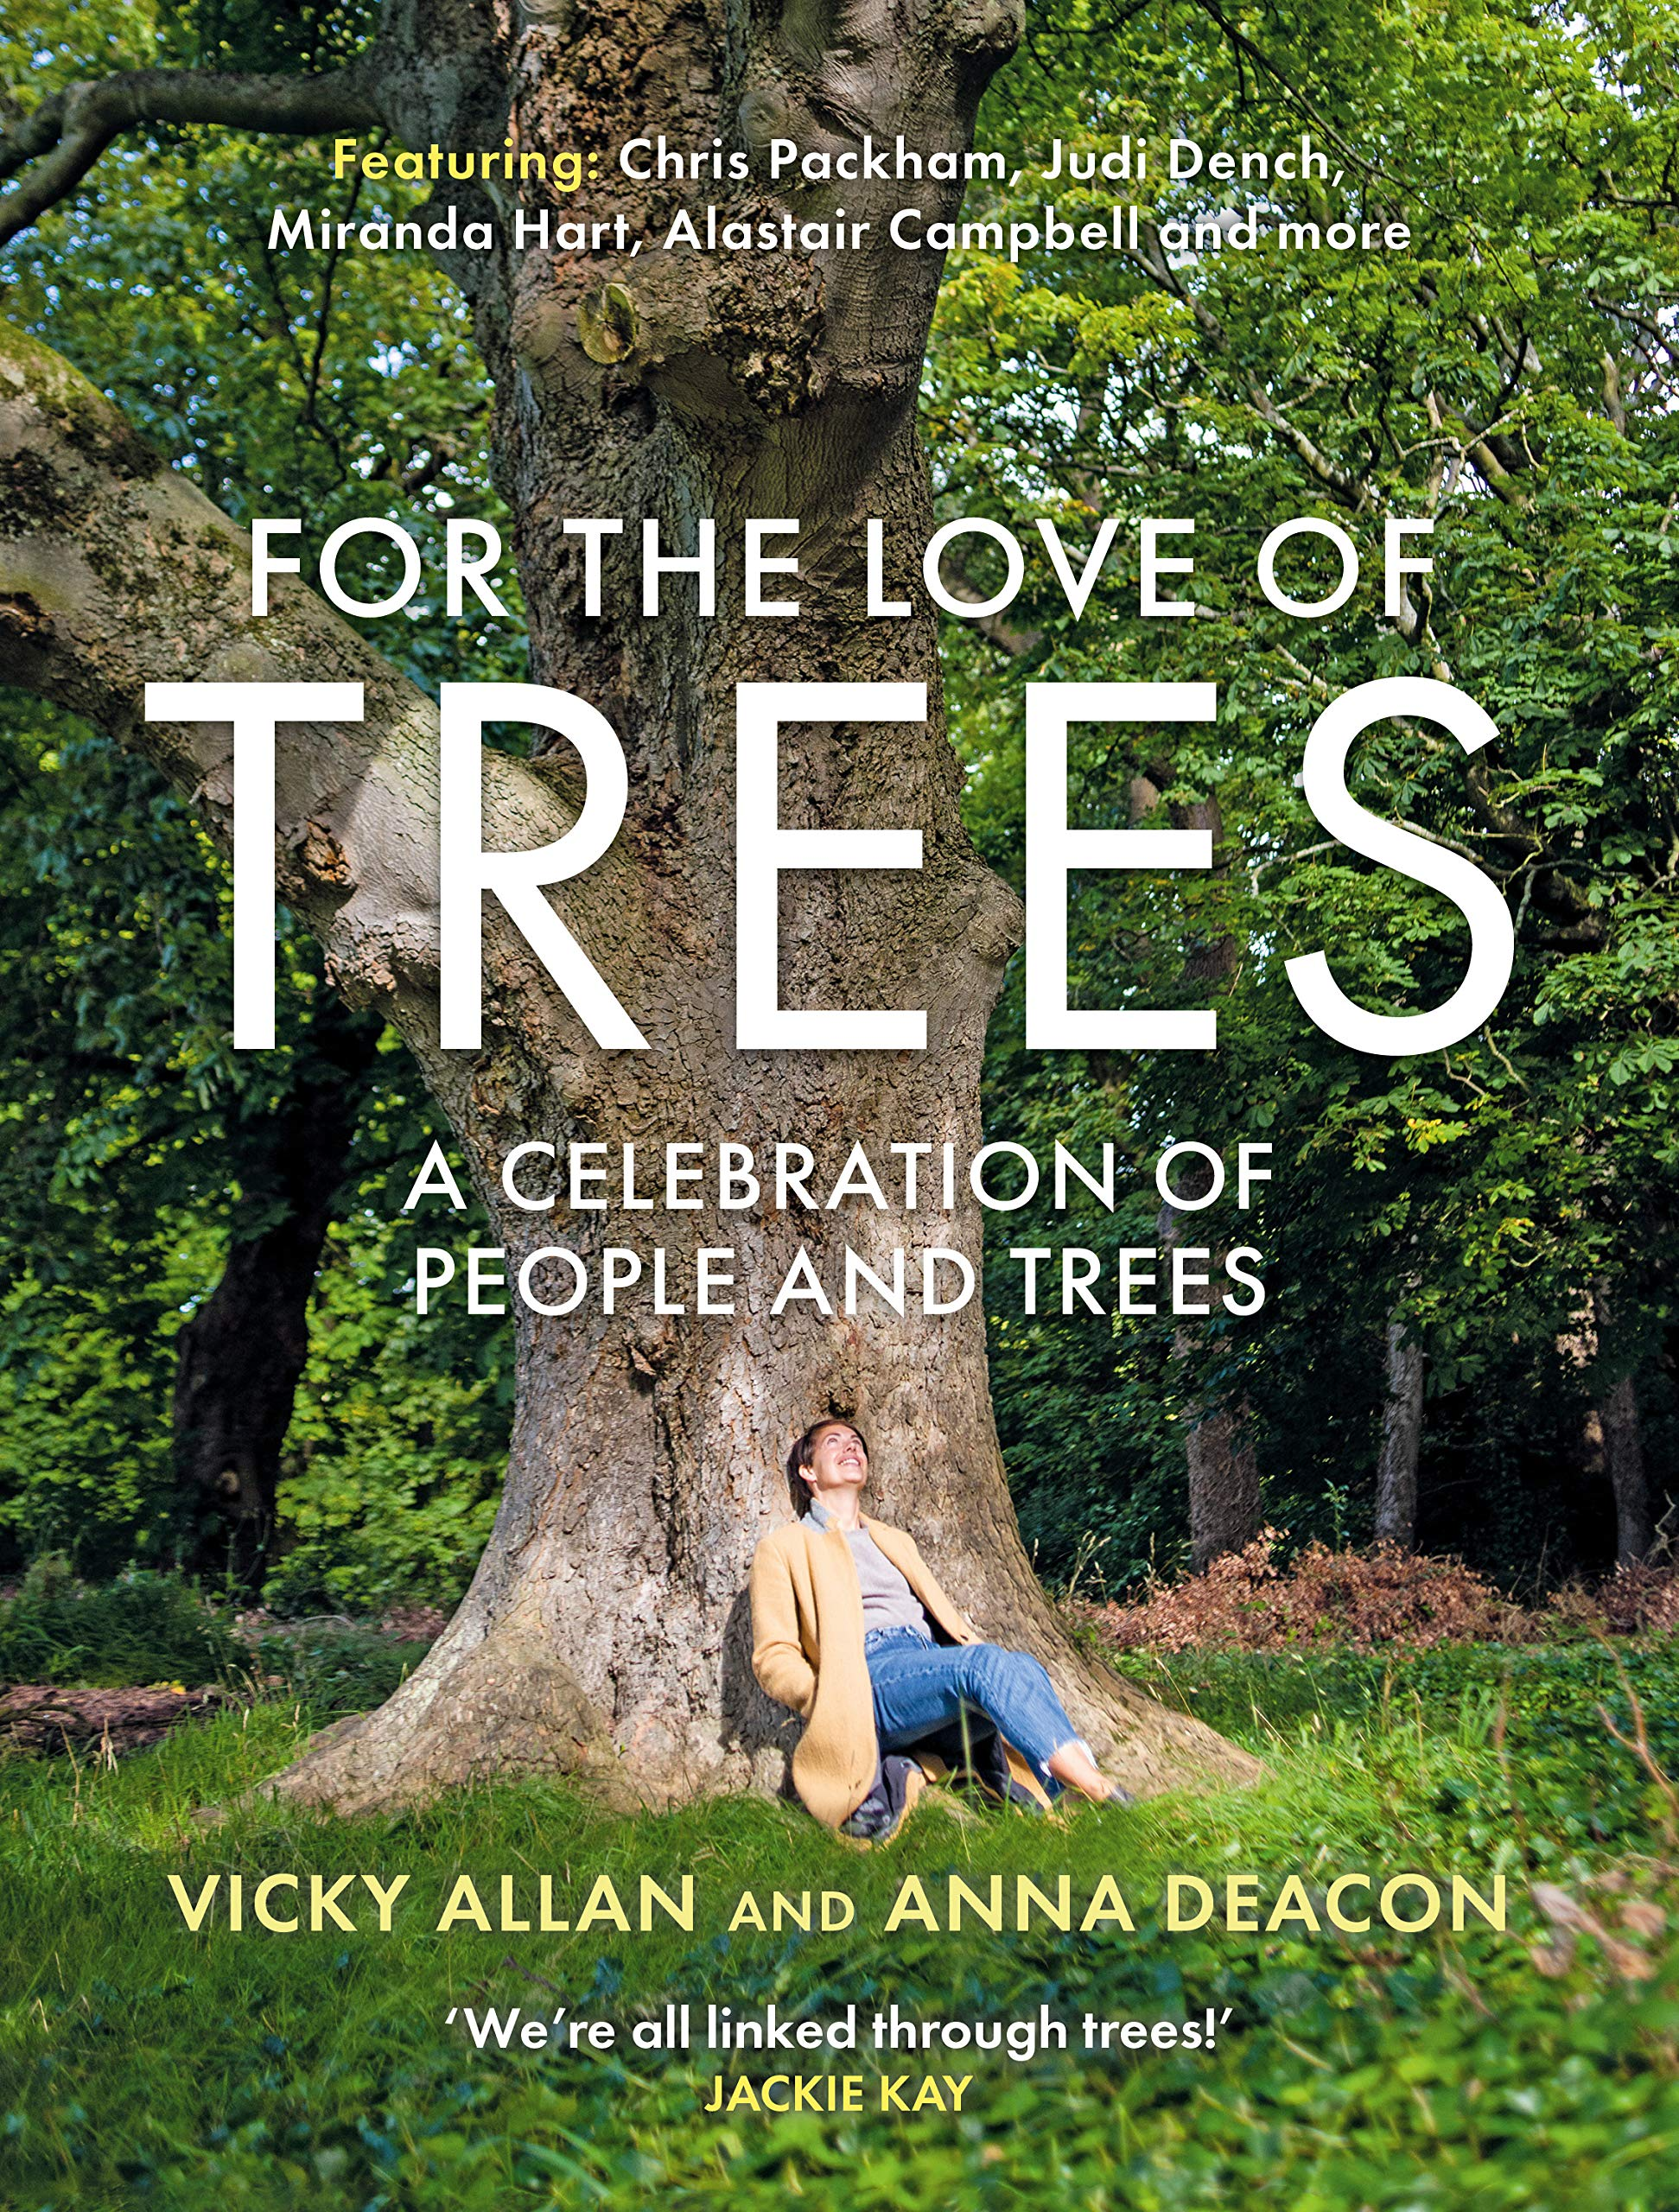 For the Love of Trees: Amazon.co.uk: Vicky Allan, Anna Deacon:  9781785303098: Books